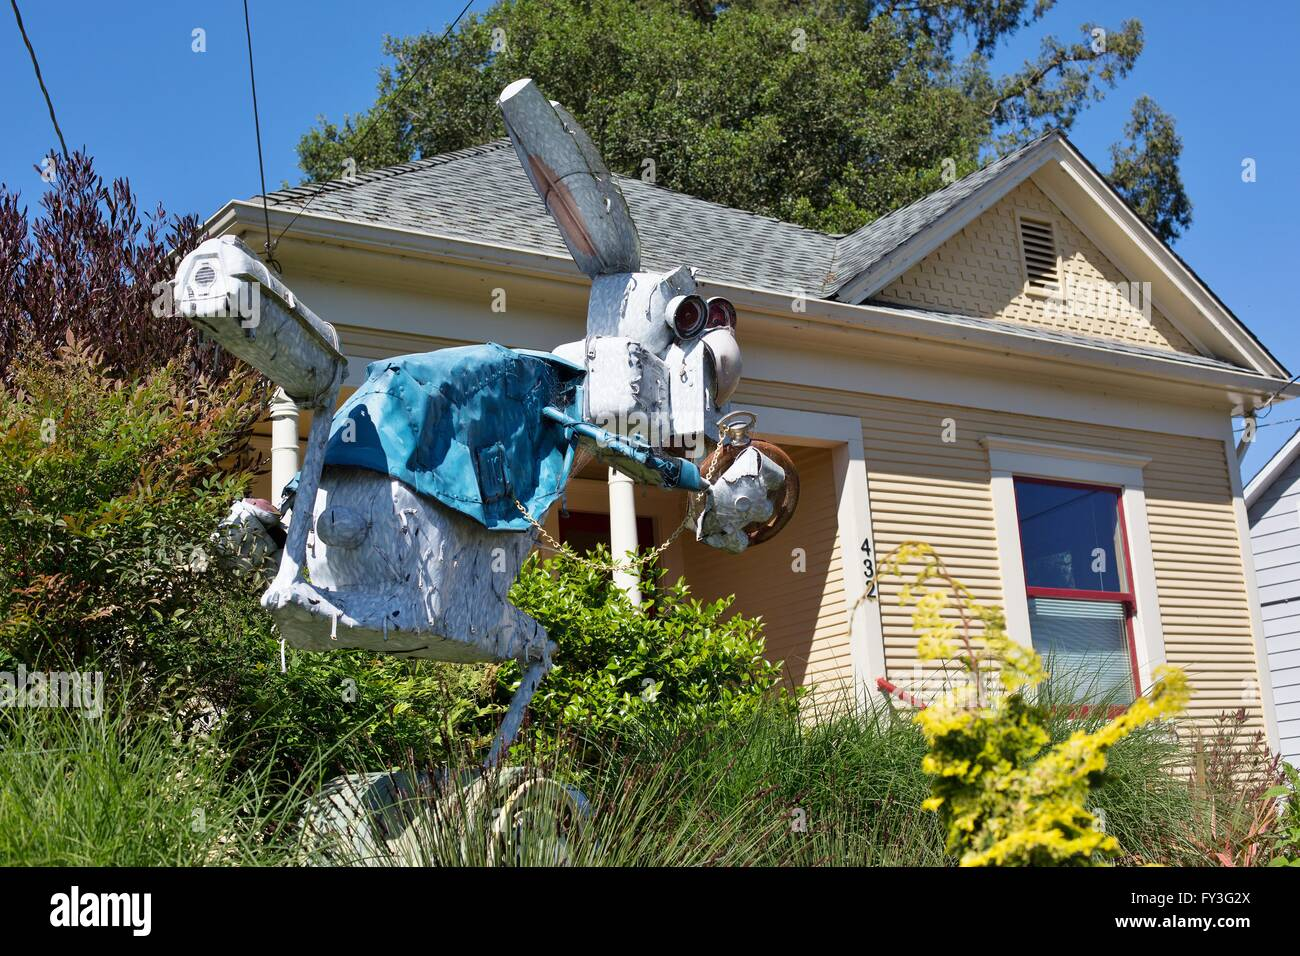 A sculpture by junk artist Patrick Amiot, in Sebastopol, California, US - Stock Image